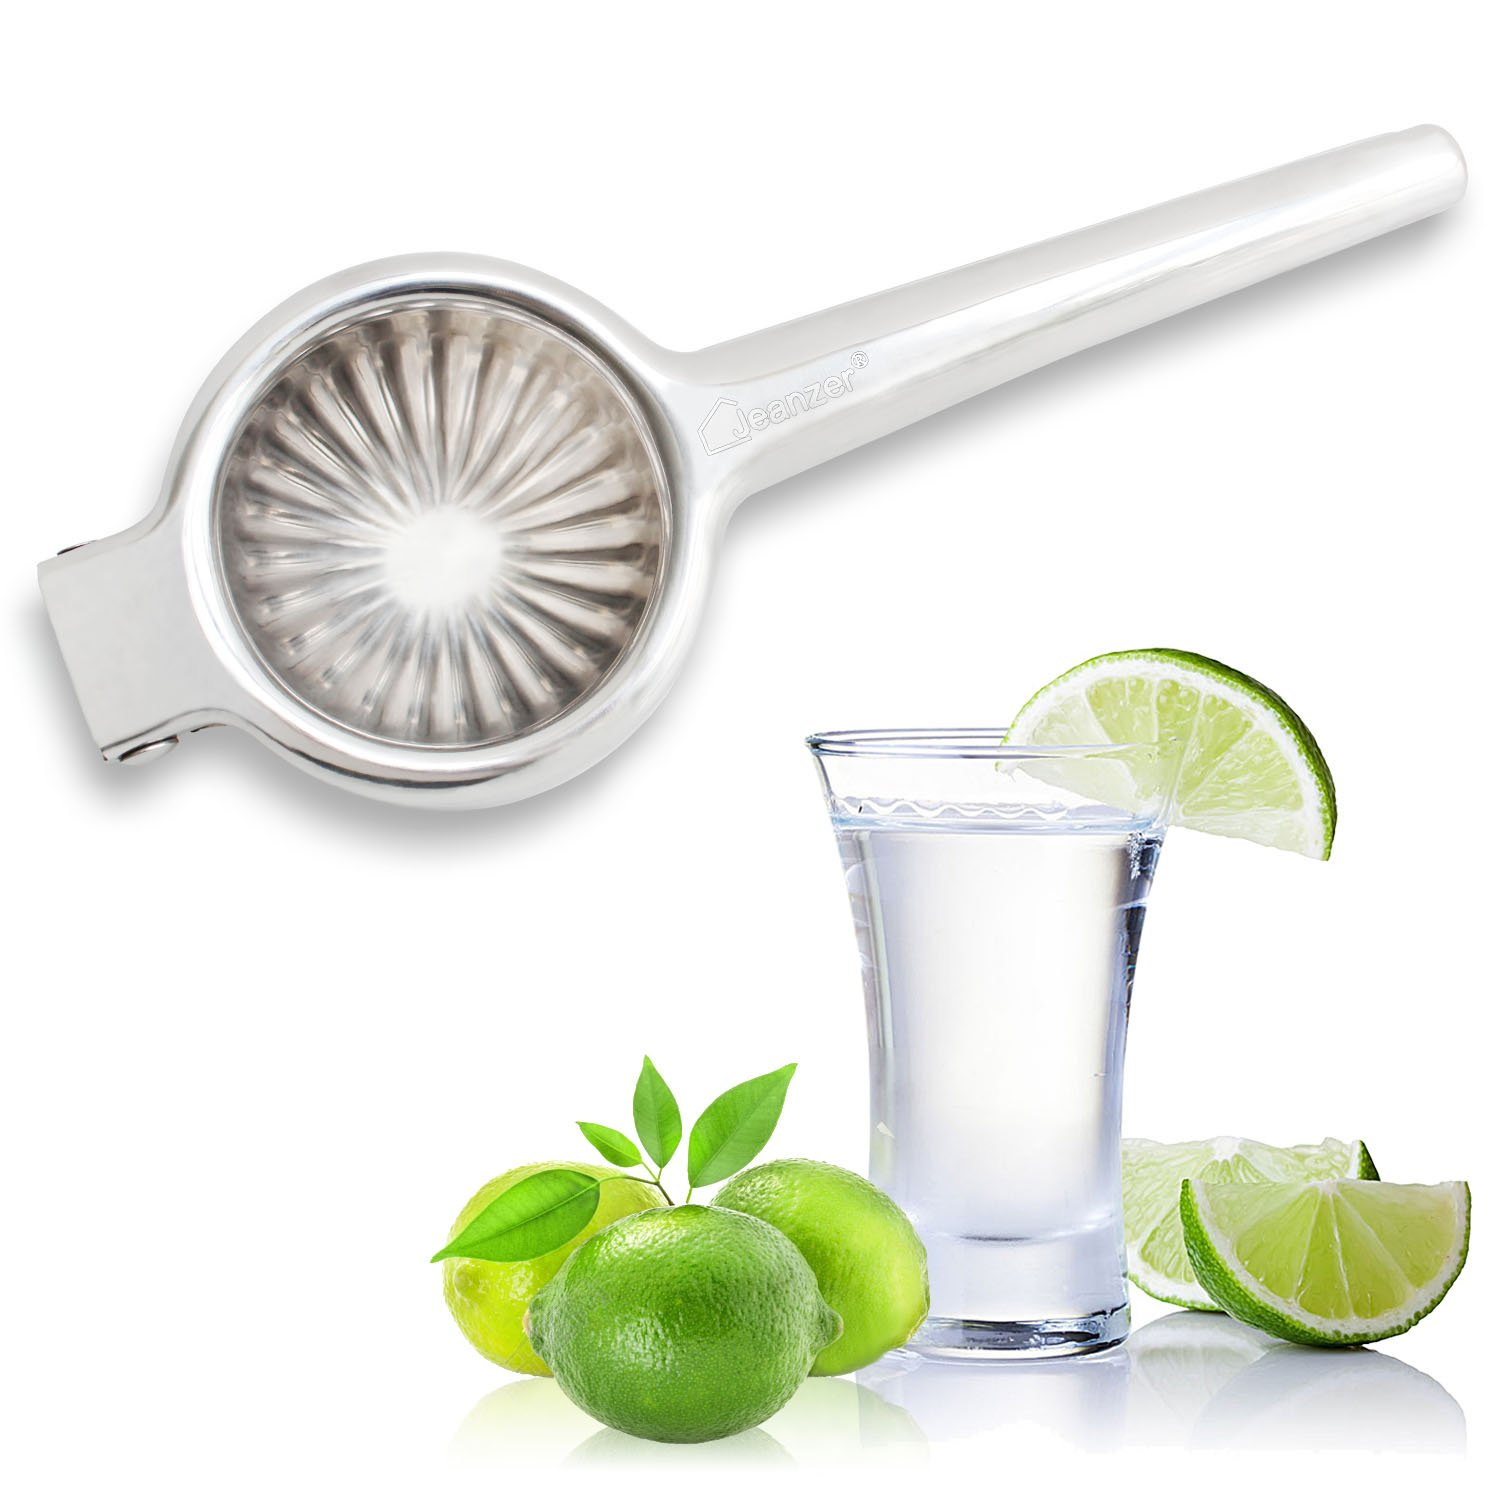 Jeanzer Manual Lemon Squeezer / Lime Juicer / Citrus Press - Quality 304 Stainless Steel by Jeanzer